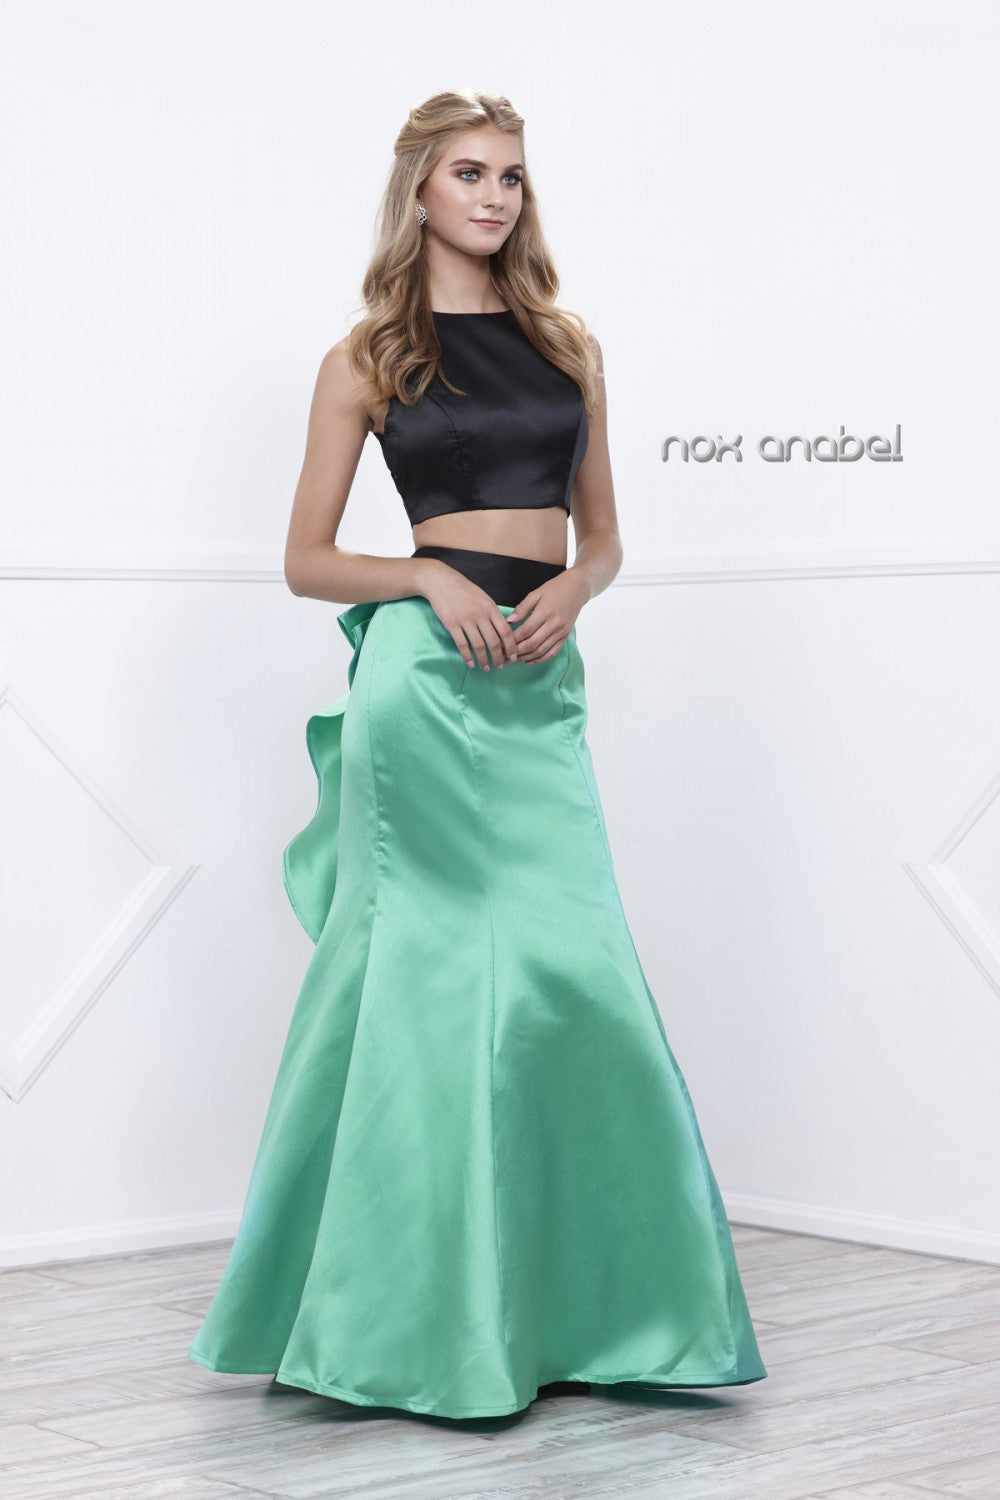 Two Piece High Neck Crop Top Prom Dress - The Dress Outlet Emerald Green